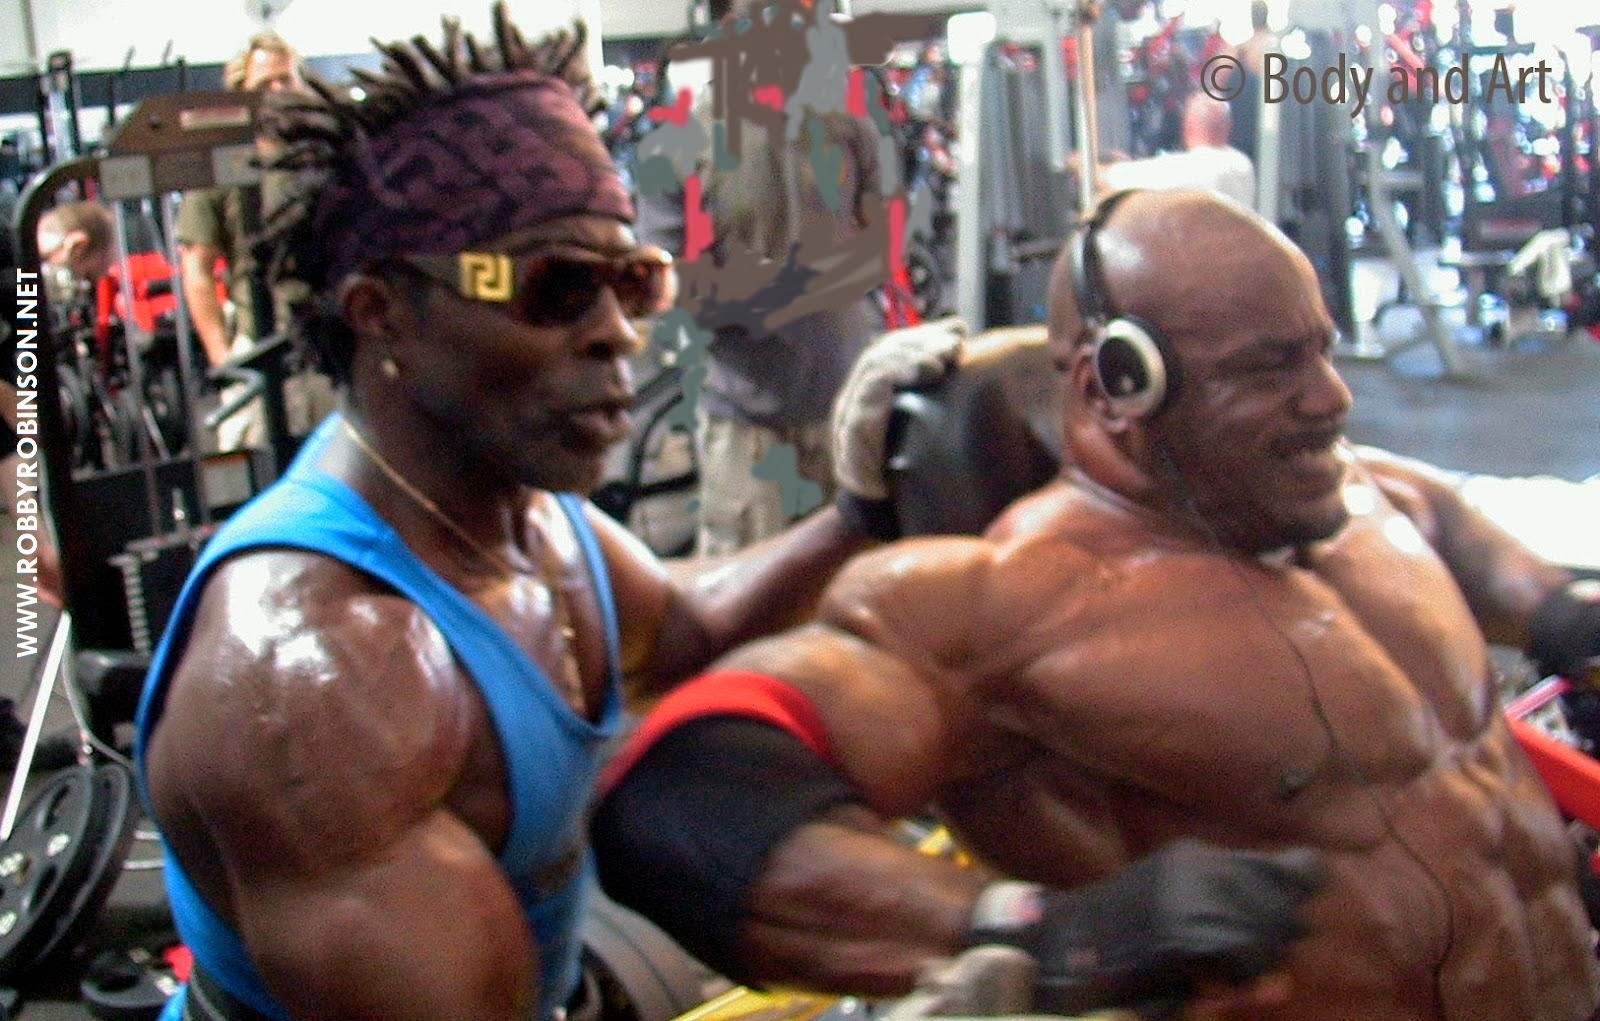 ROBBY ROBINSON AND CHRIS CORMIER - HVY CHEST&ARMS WORKOUT DURING ROBBY'S MASTER CLASS ONE-ON-ONE INTENSIVE TRAINING AND POSING FOR FLEX MAGAZINE PHOTO SHOOT AT GOLD'S, CA 2008 ● www.robbyrobinson.net//master-class.php ●